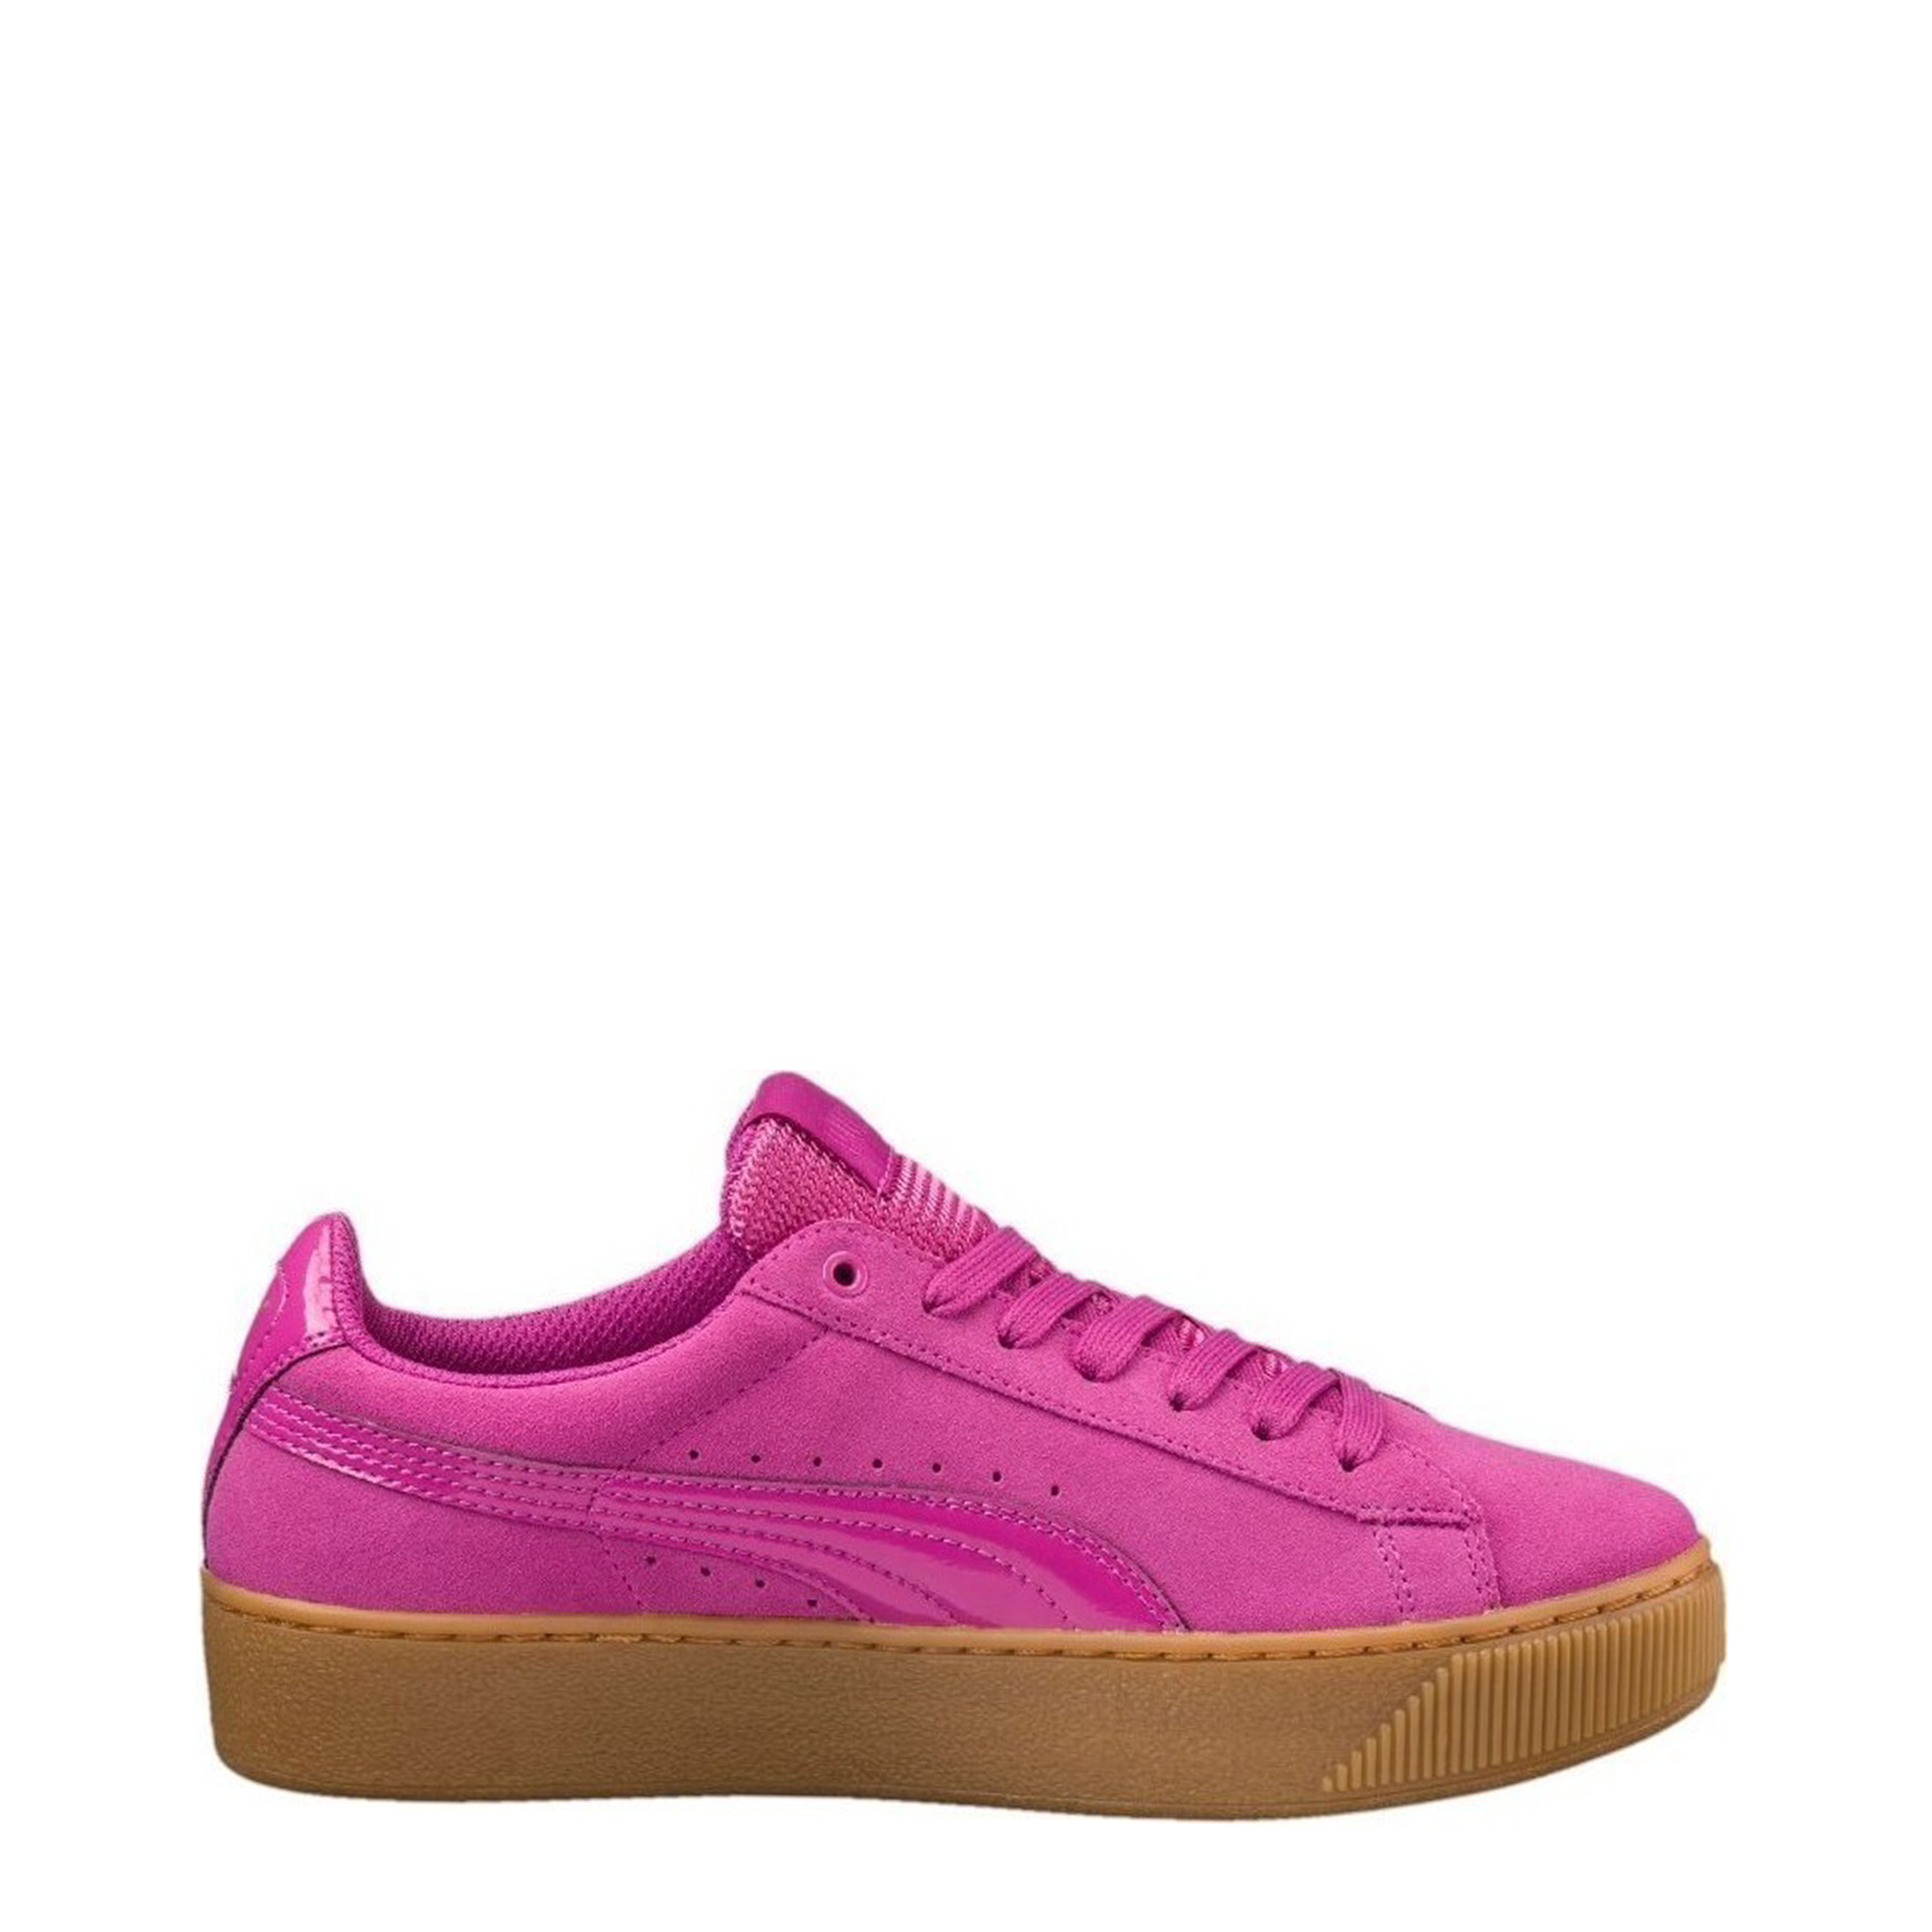 Baskets / Sneakers  Puma 363287 violet